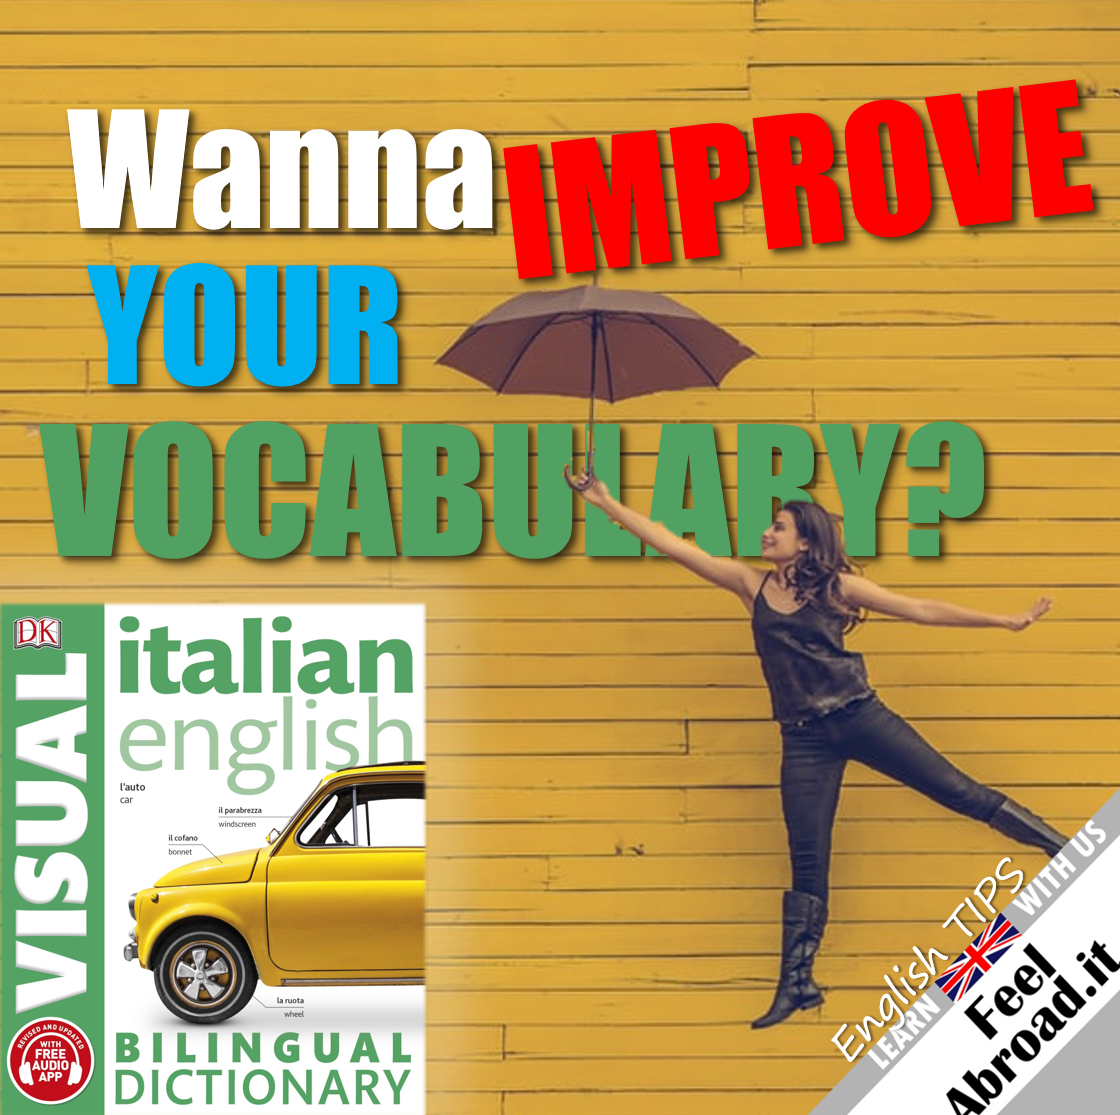 BILINGUAL VISUAL DICTIONARY Italian-English